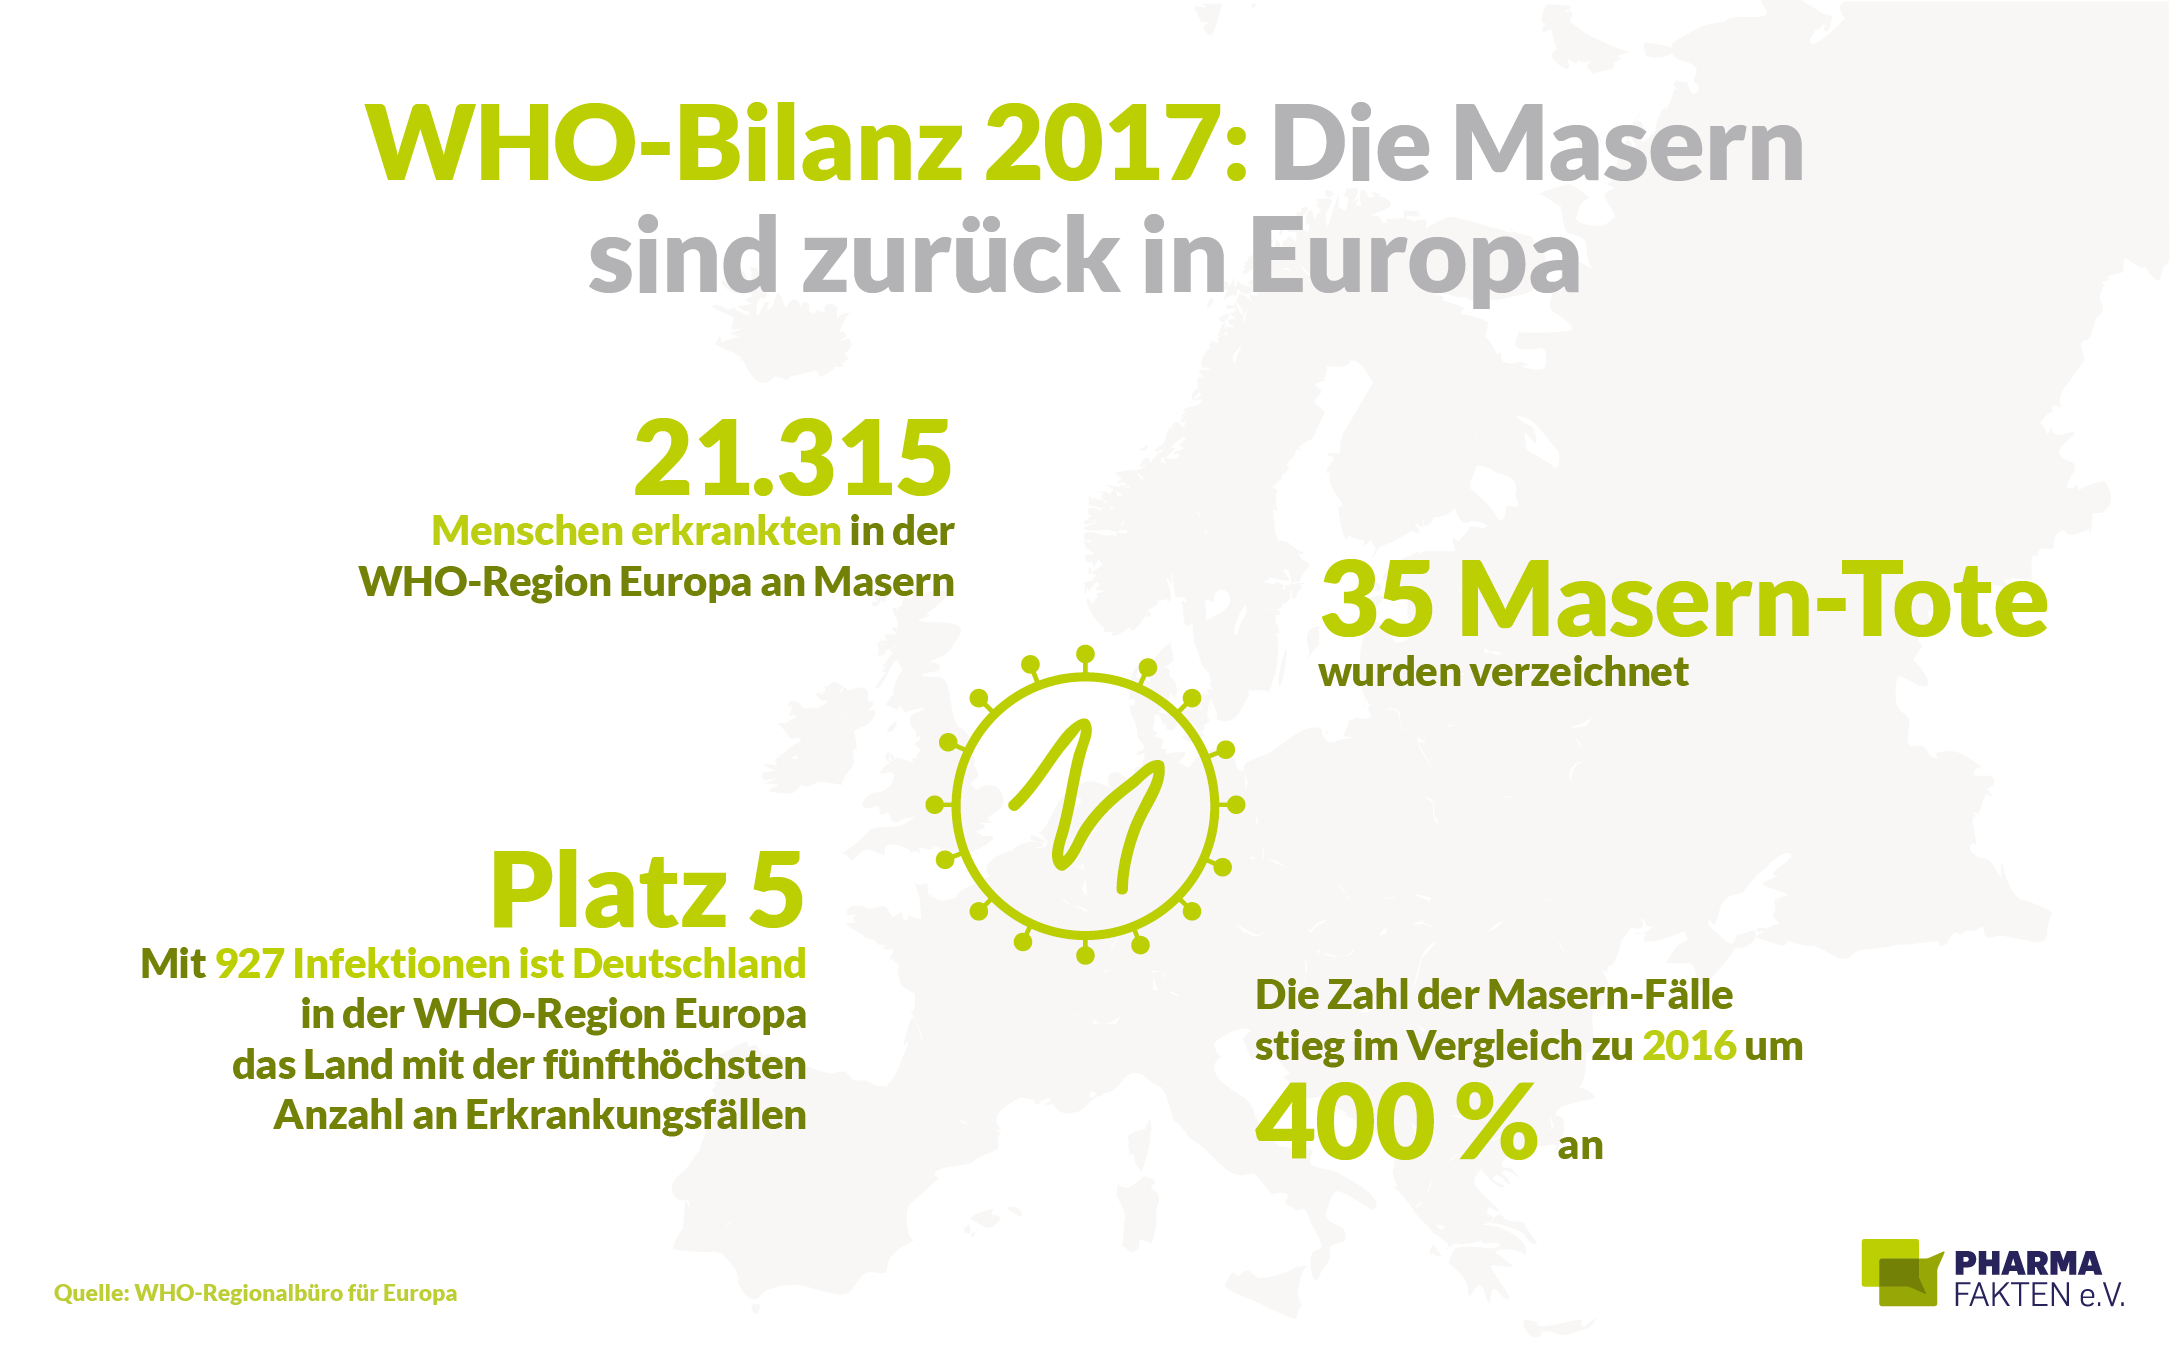 WHO-Bilanz 2017: Masern in Europa